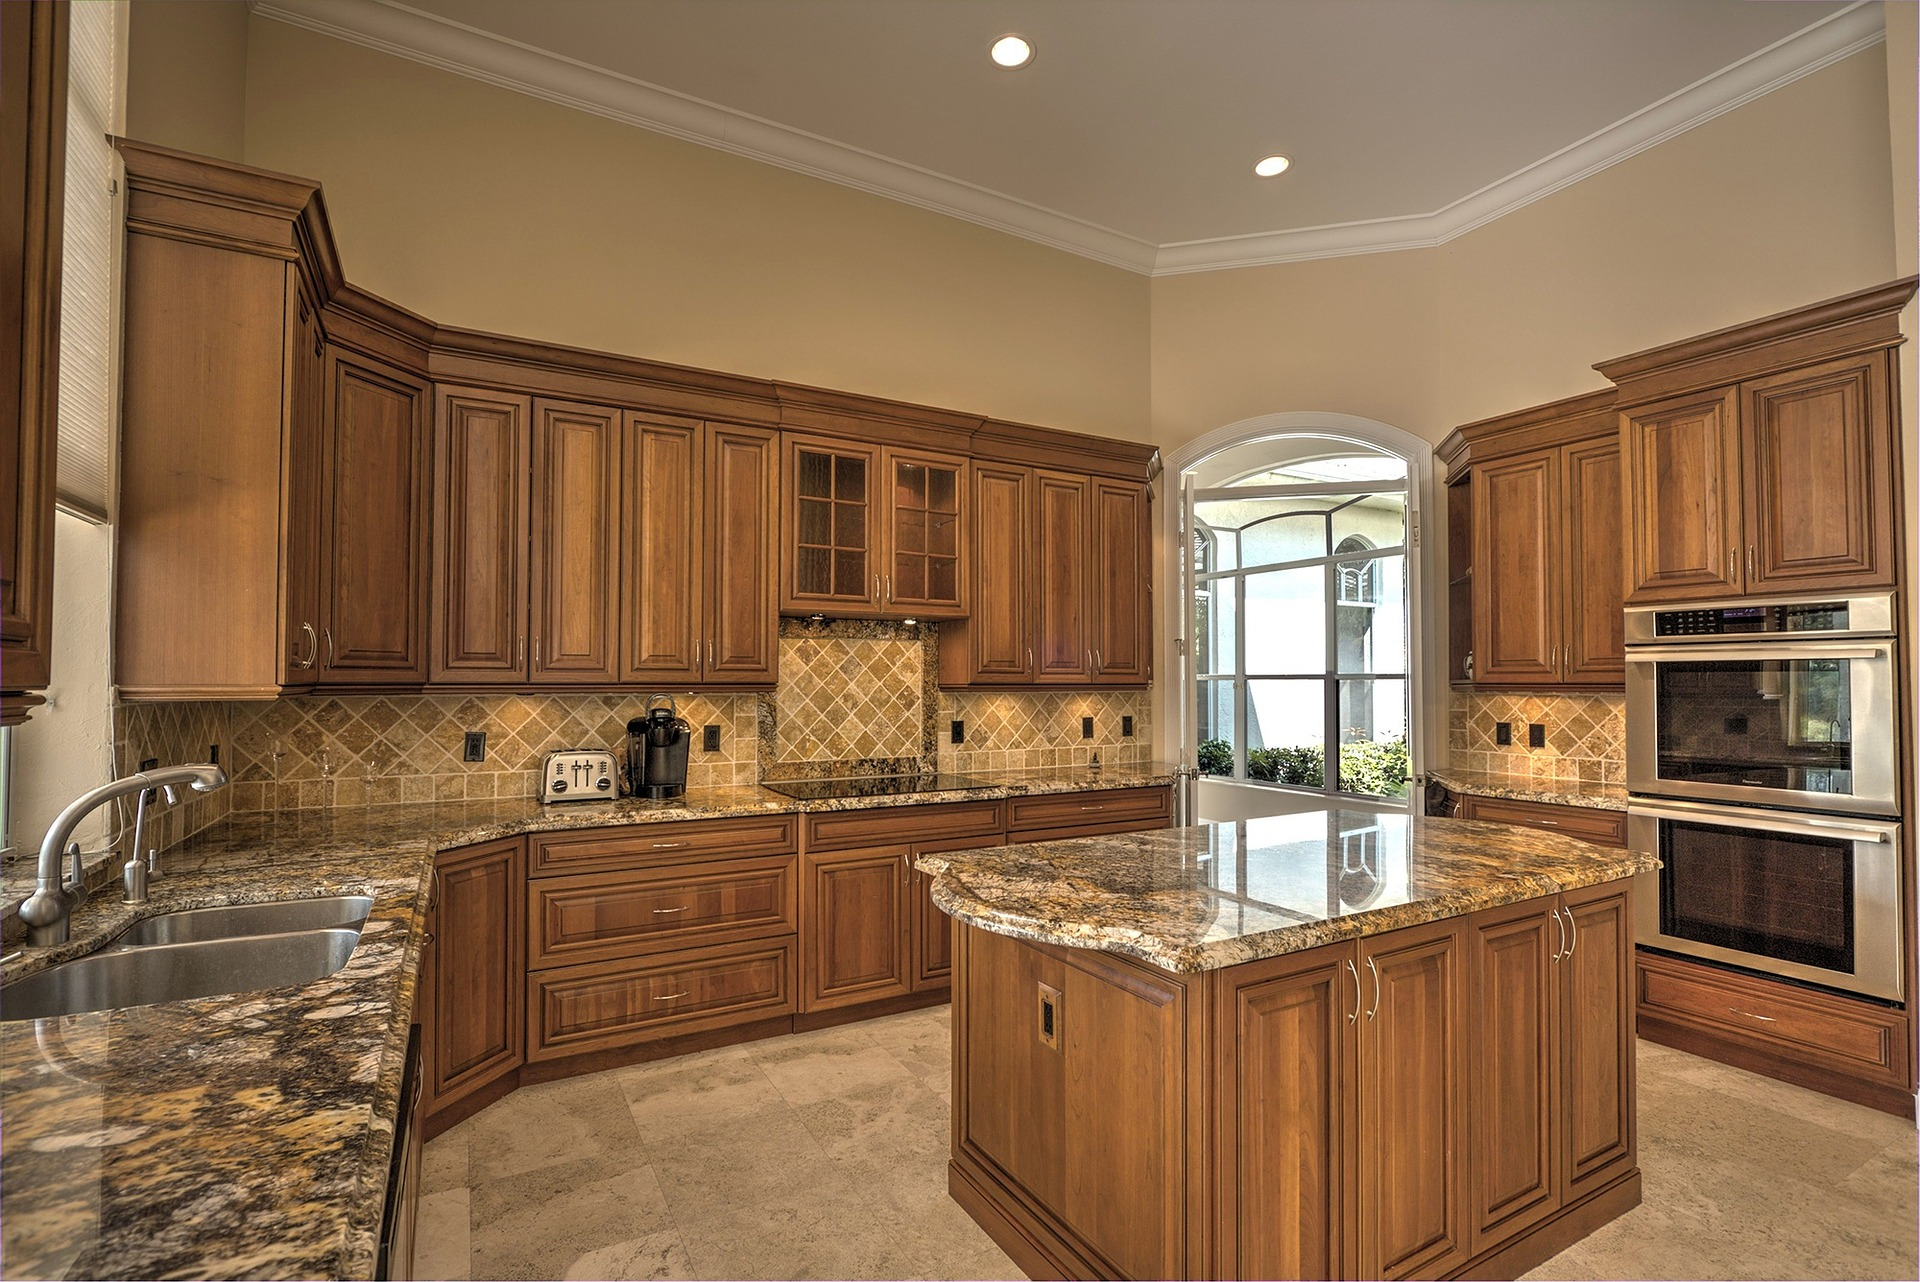 Beautiful kitchen with polished granite countertop and middle island.